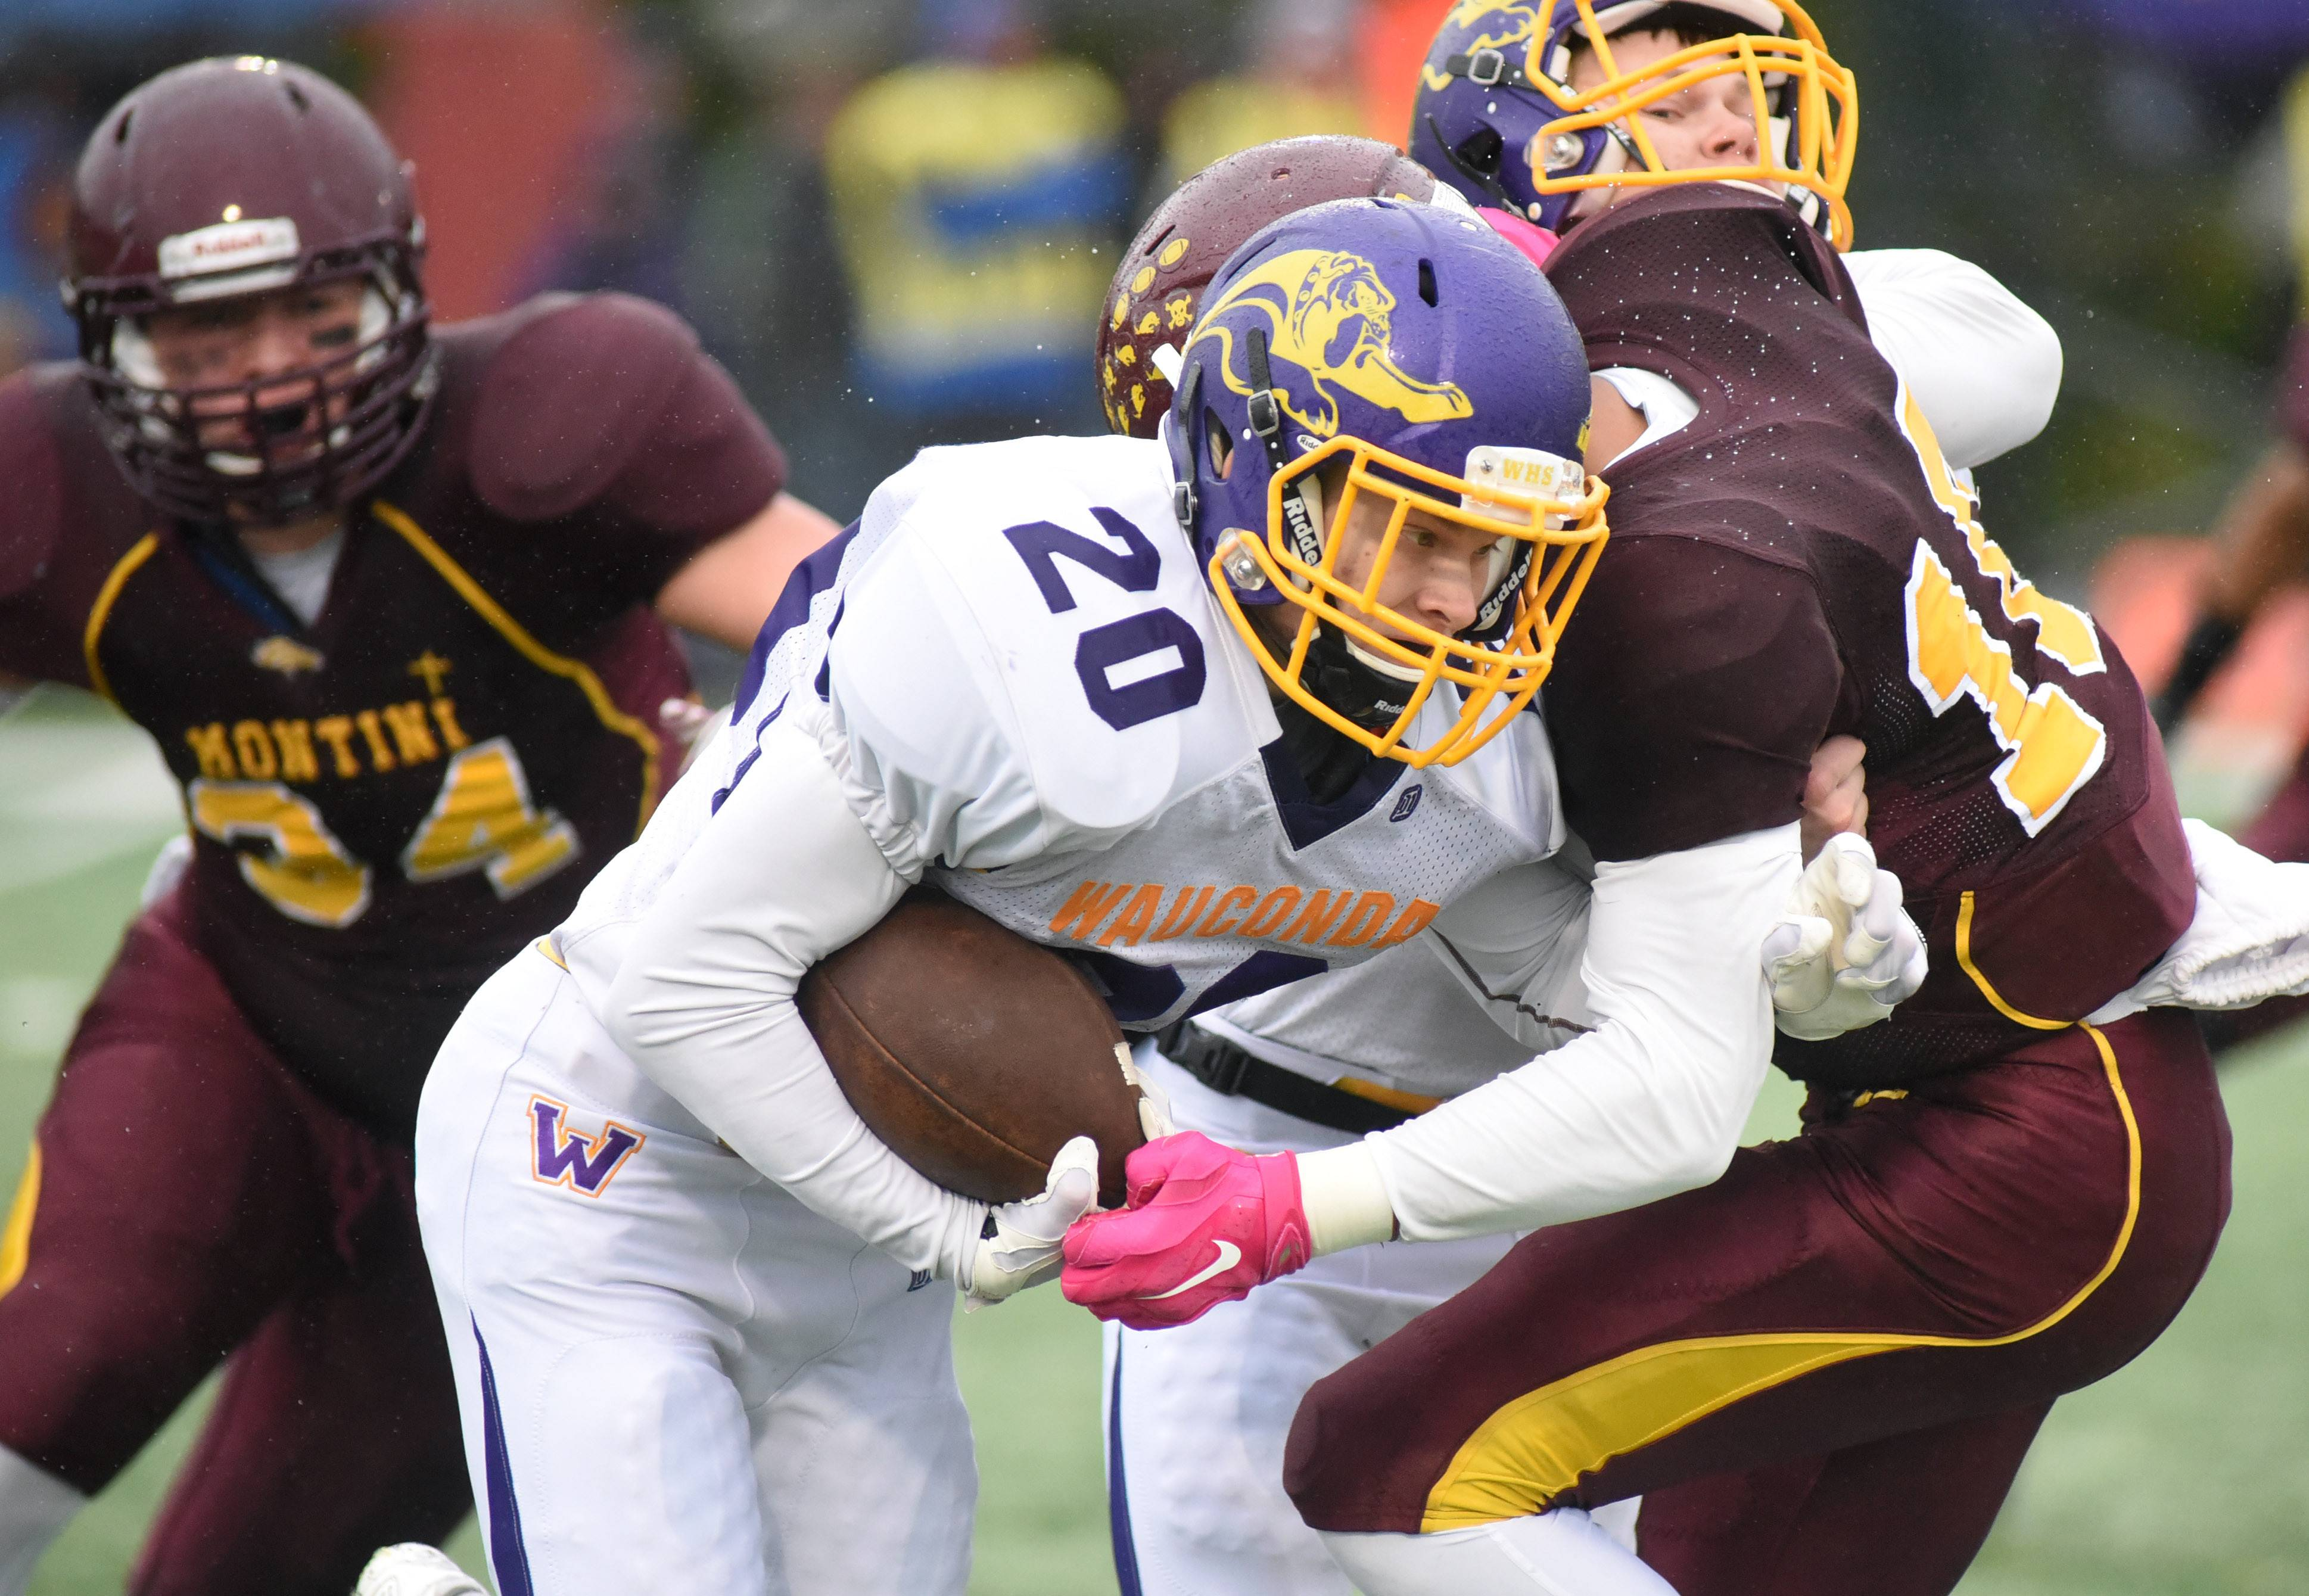 Wauconda is counting on senior running back Andry Nevski (20), who missed last season with a torn ACL.